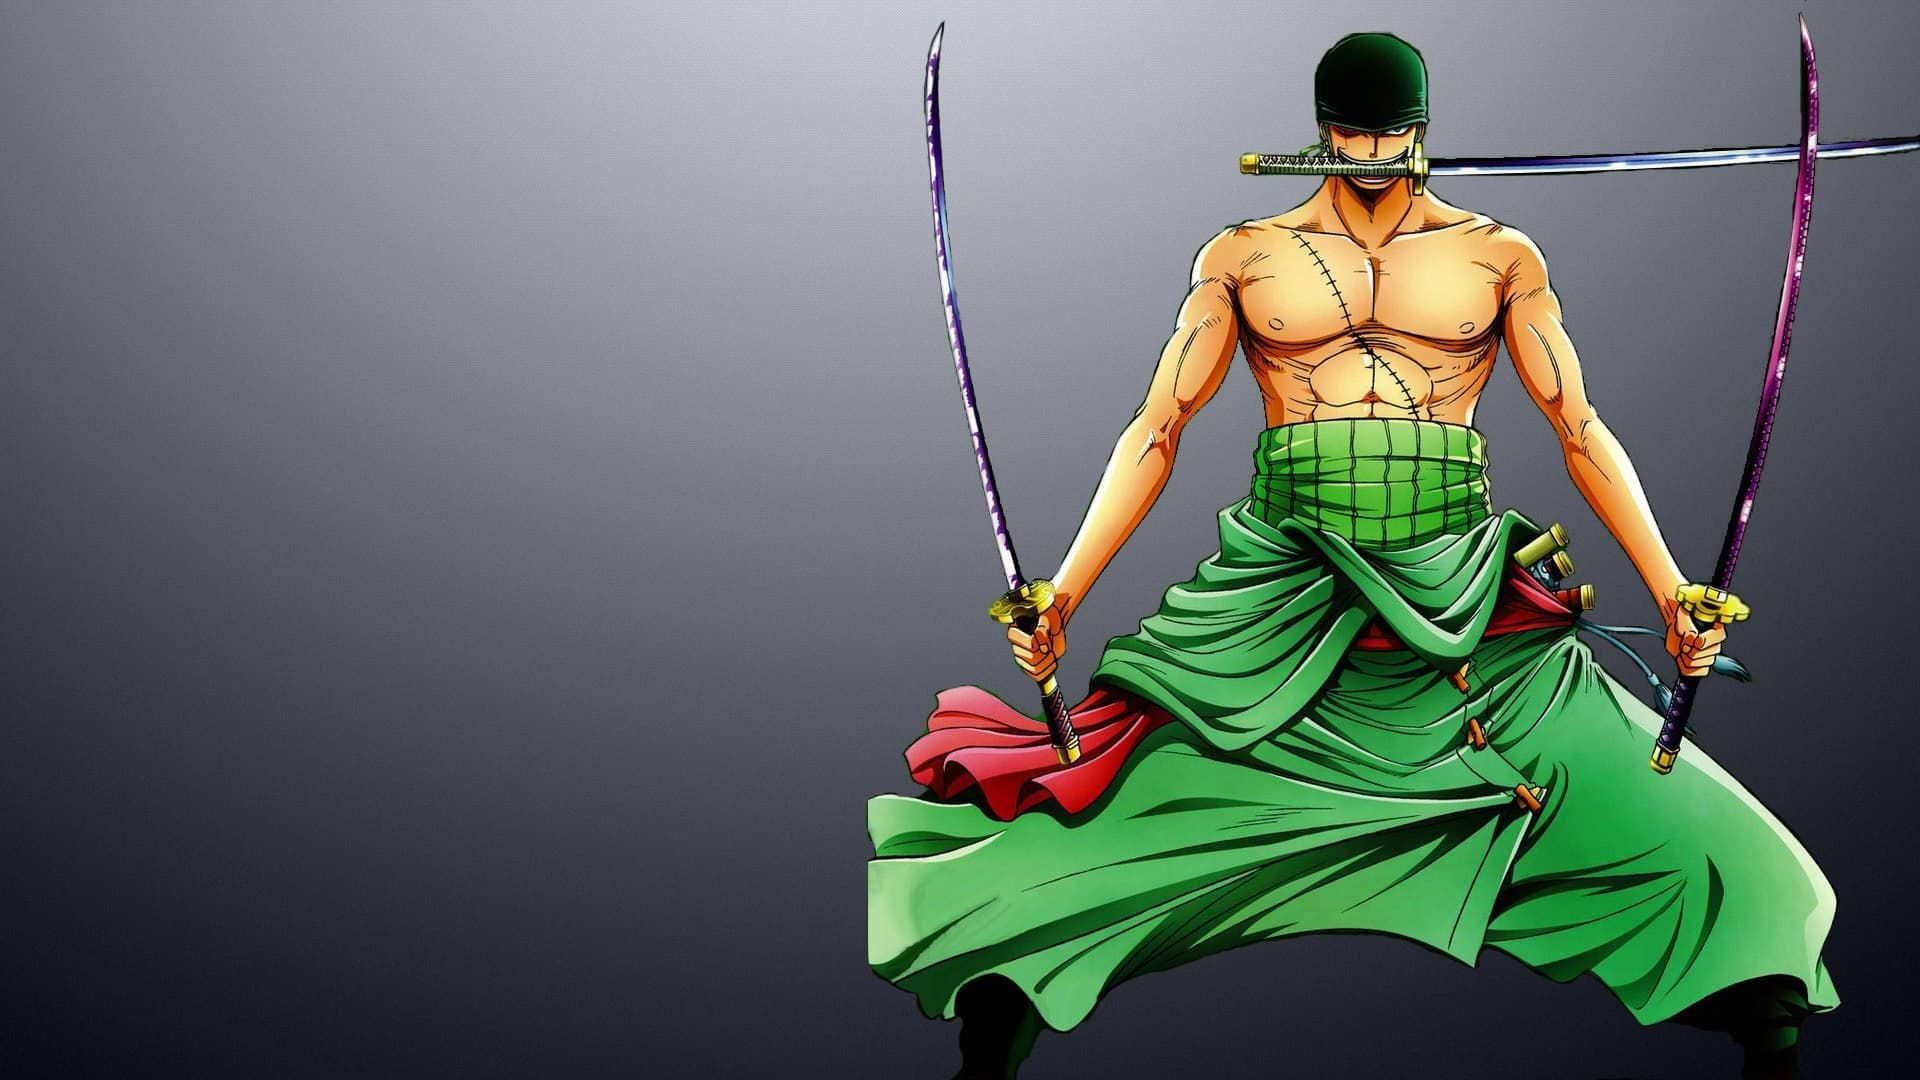 1920x1080 Zoro Roronoa One Piece Full Hd Wallpaper Zoro One Piece Zoro 1080p Anime Wallpaper